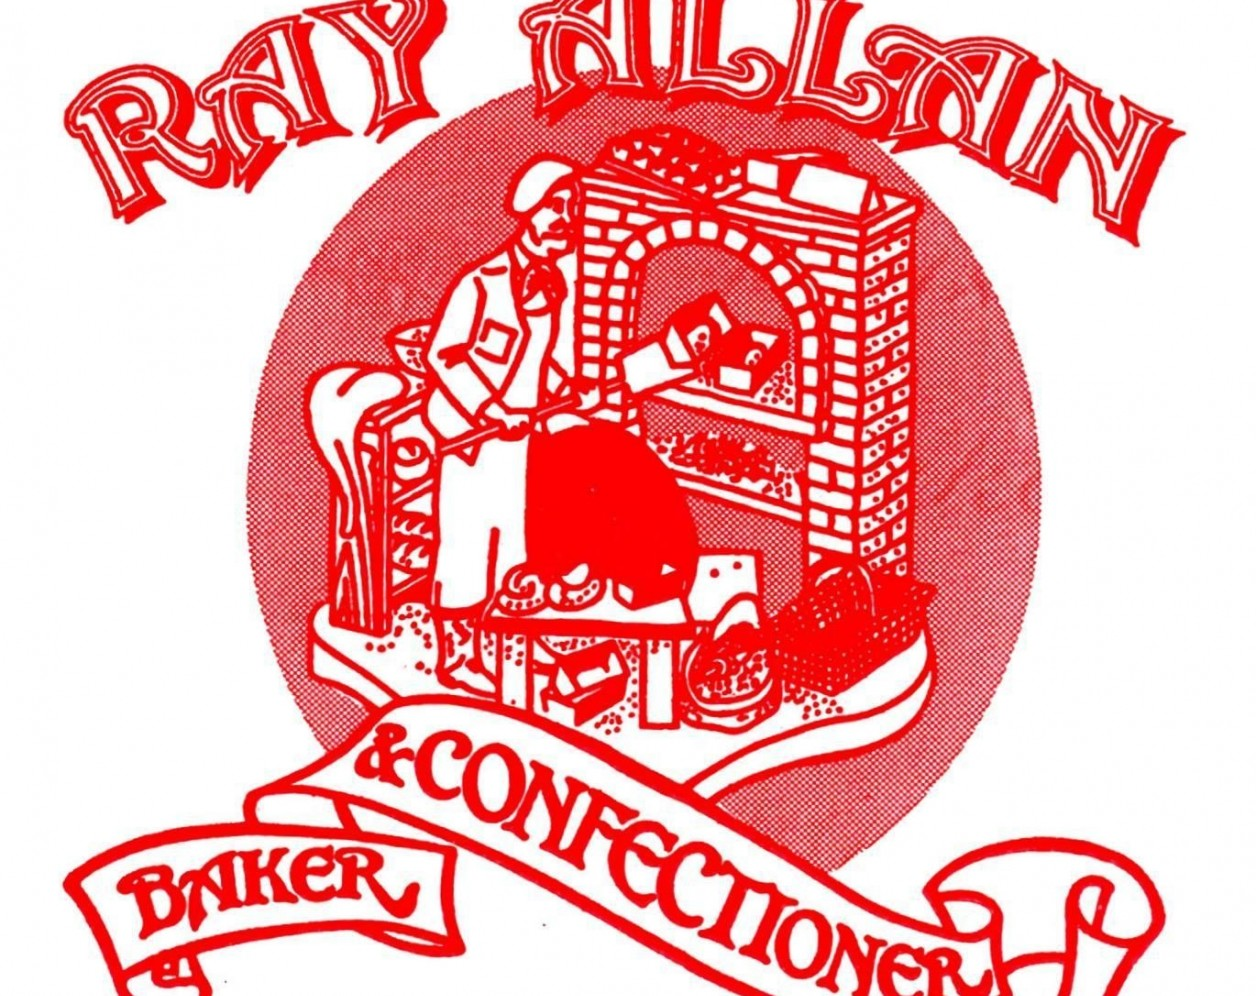 Ray Allan Baker and Confectioner